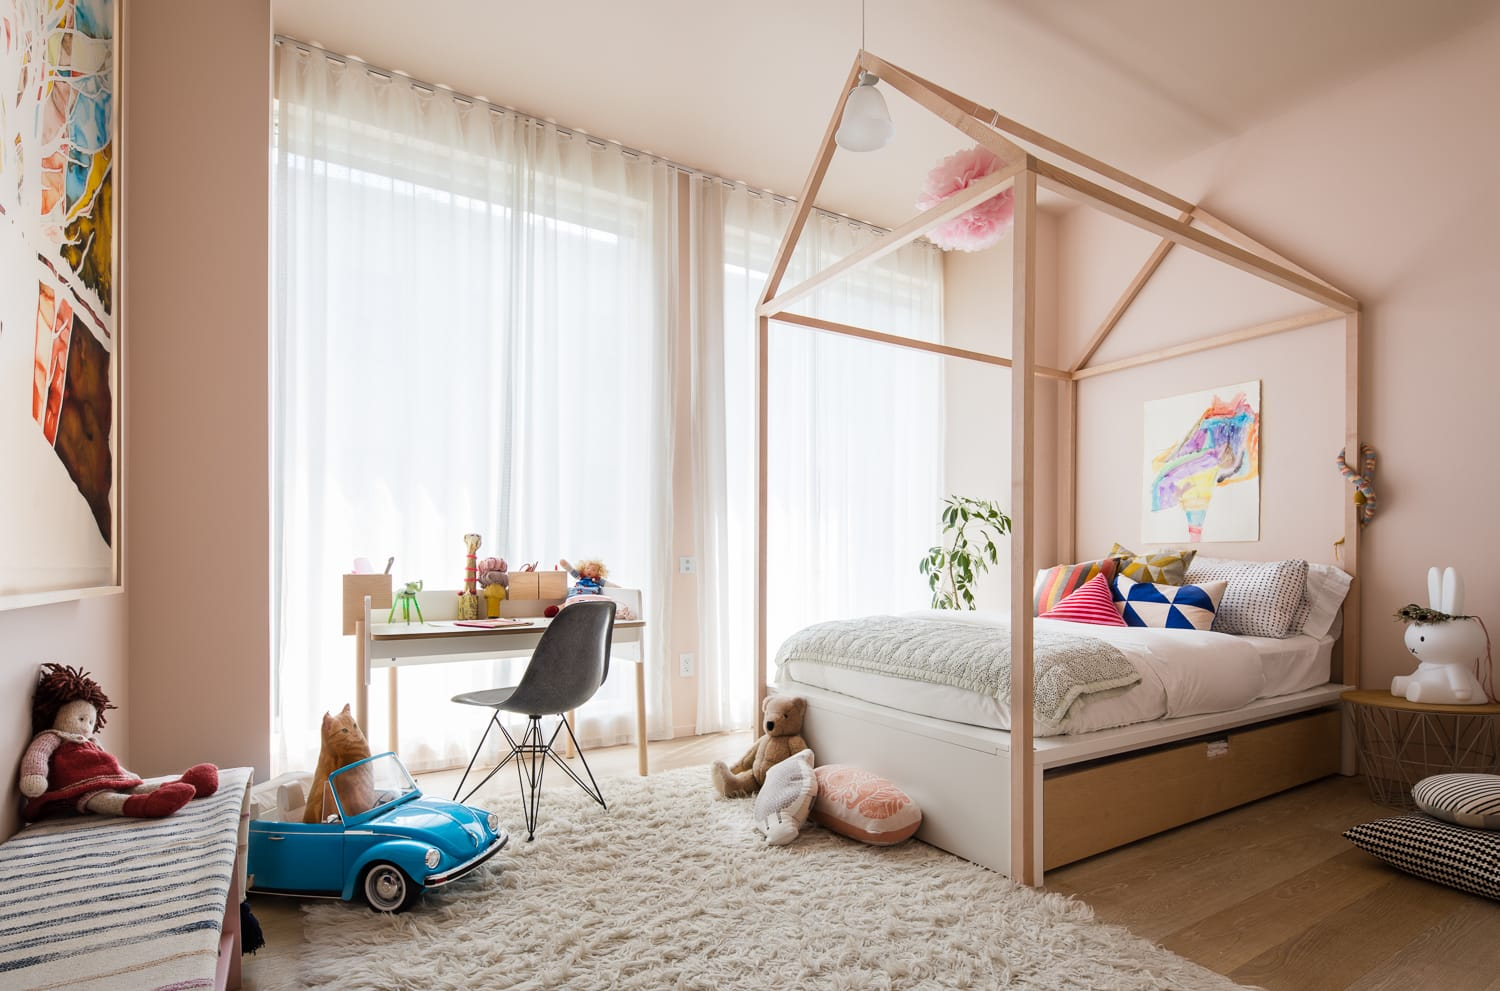 Kids Room Interior design by Alloy Development